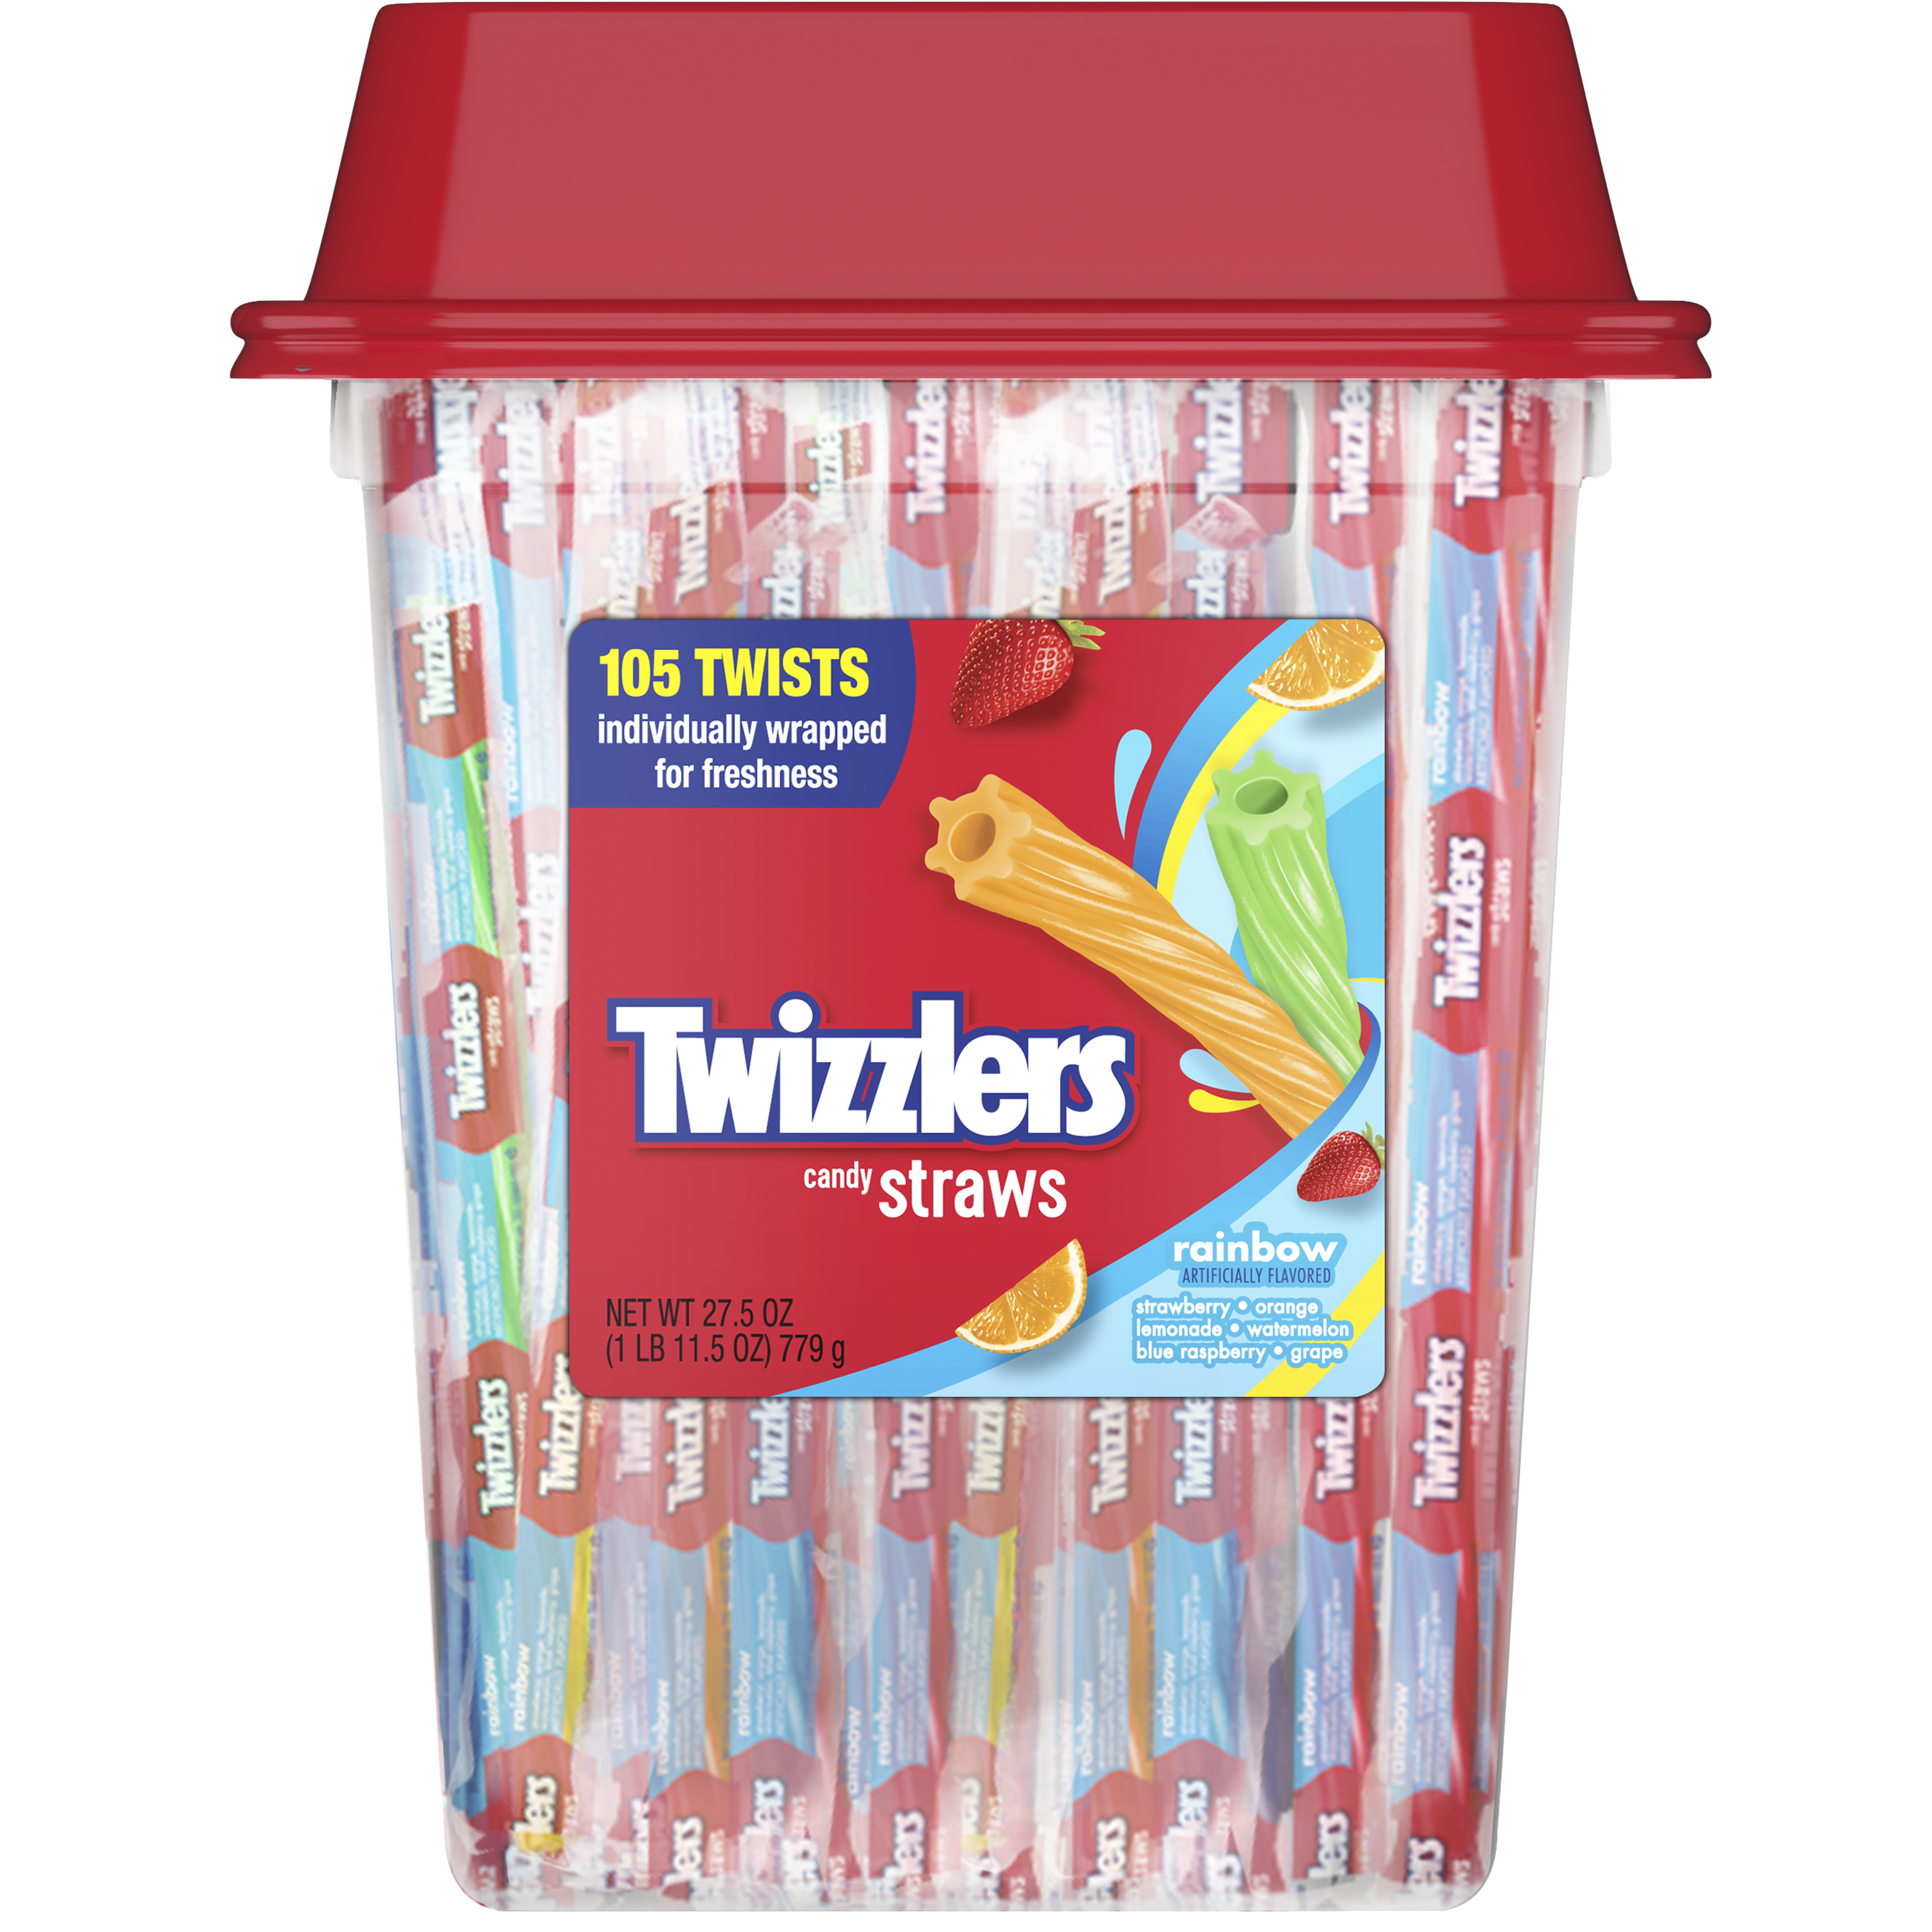 TWIZZLERS Twists Rainbow Candy, 27.5 oz tub, 105 pieces - Front of Package